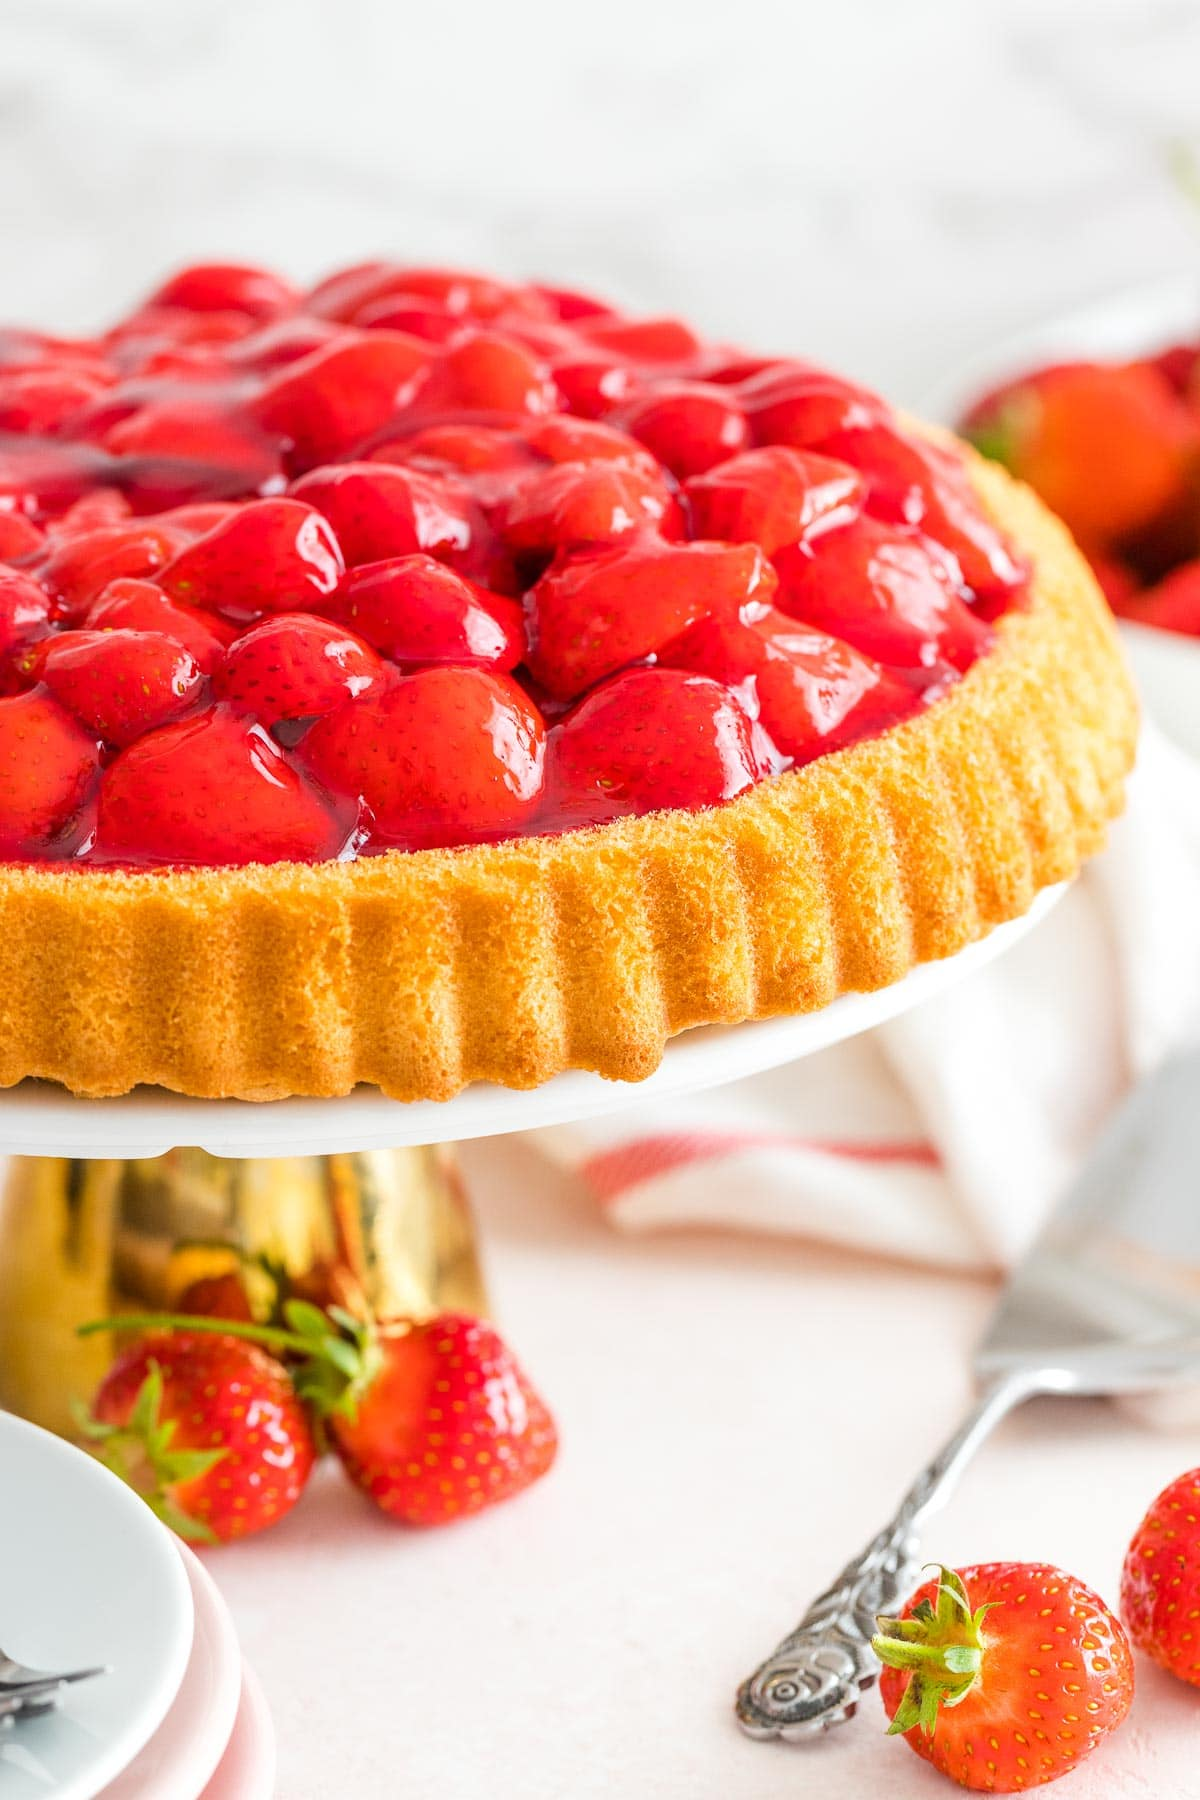 A cake made with strawberries on a cake stand